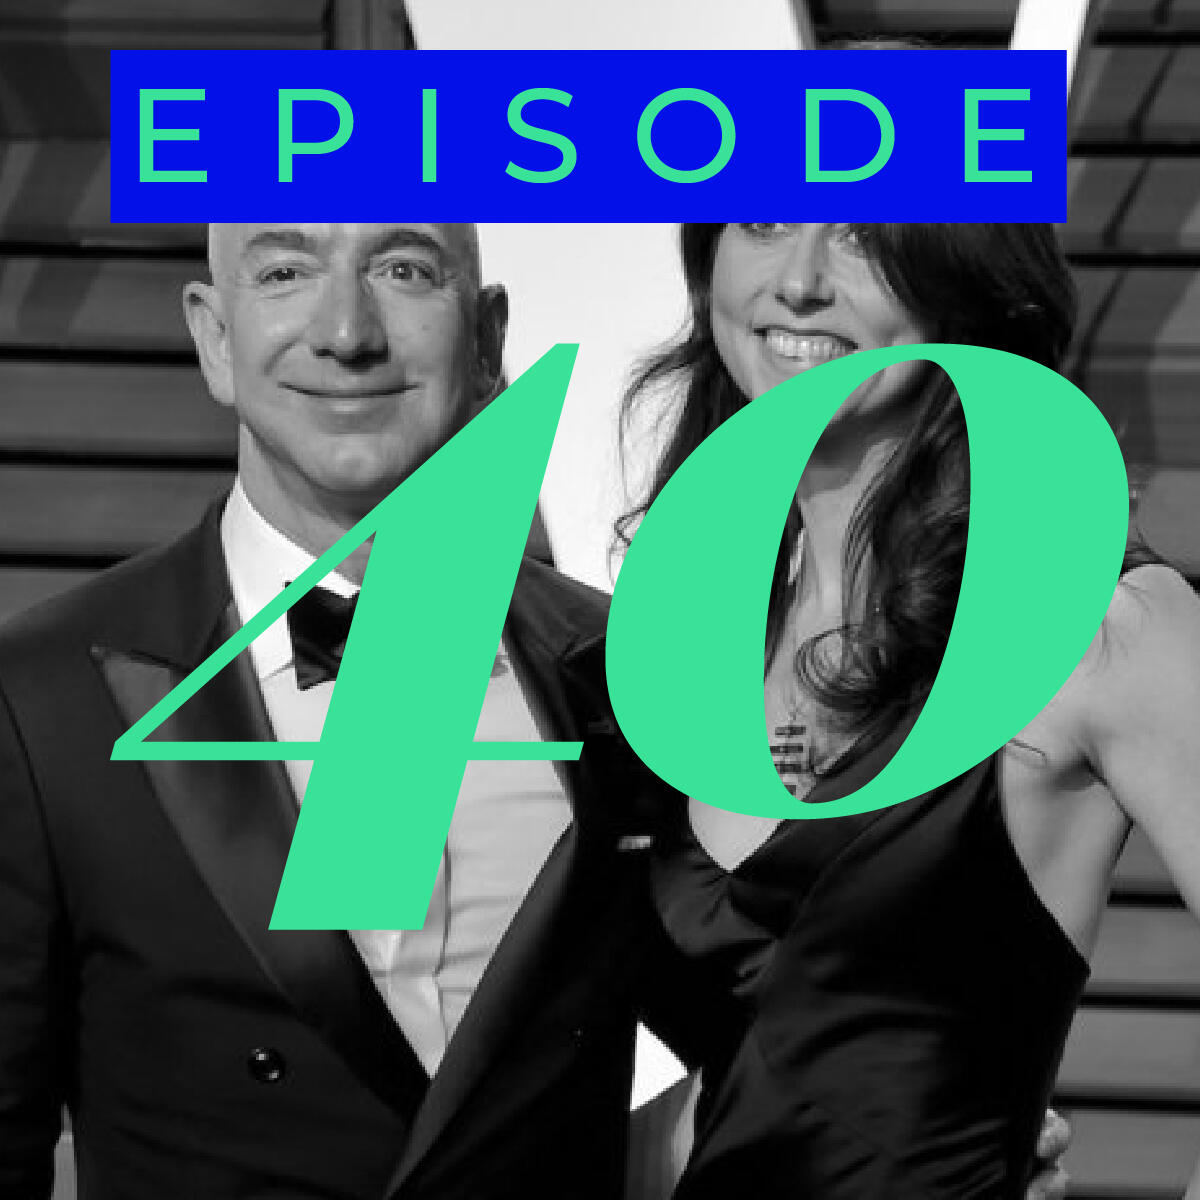 40: Jeff Bezos' divorce, Airbnb spy cams, Emotional support falcons